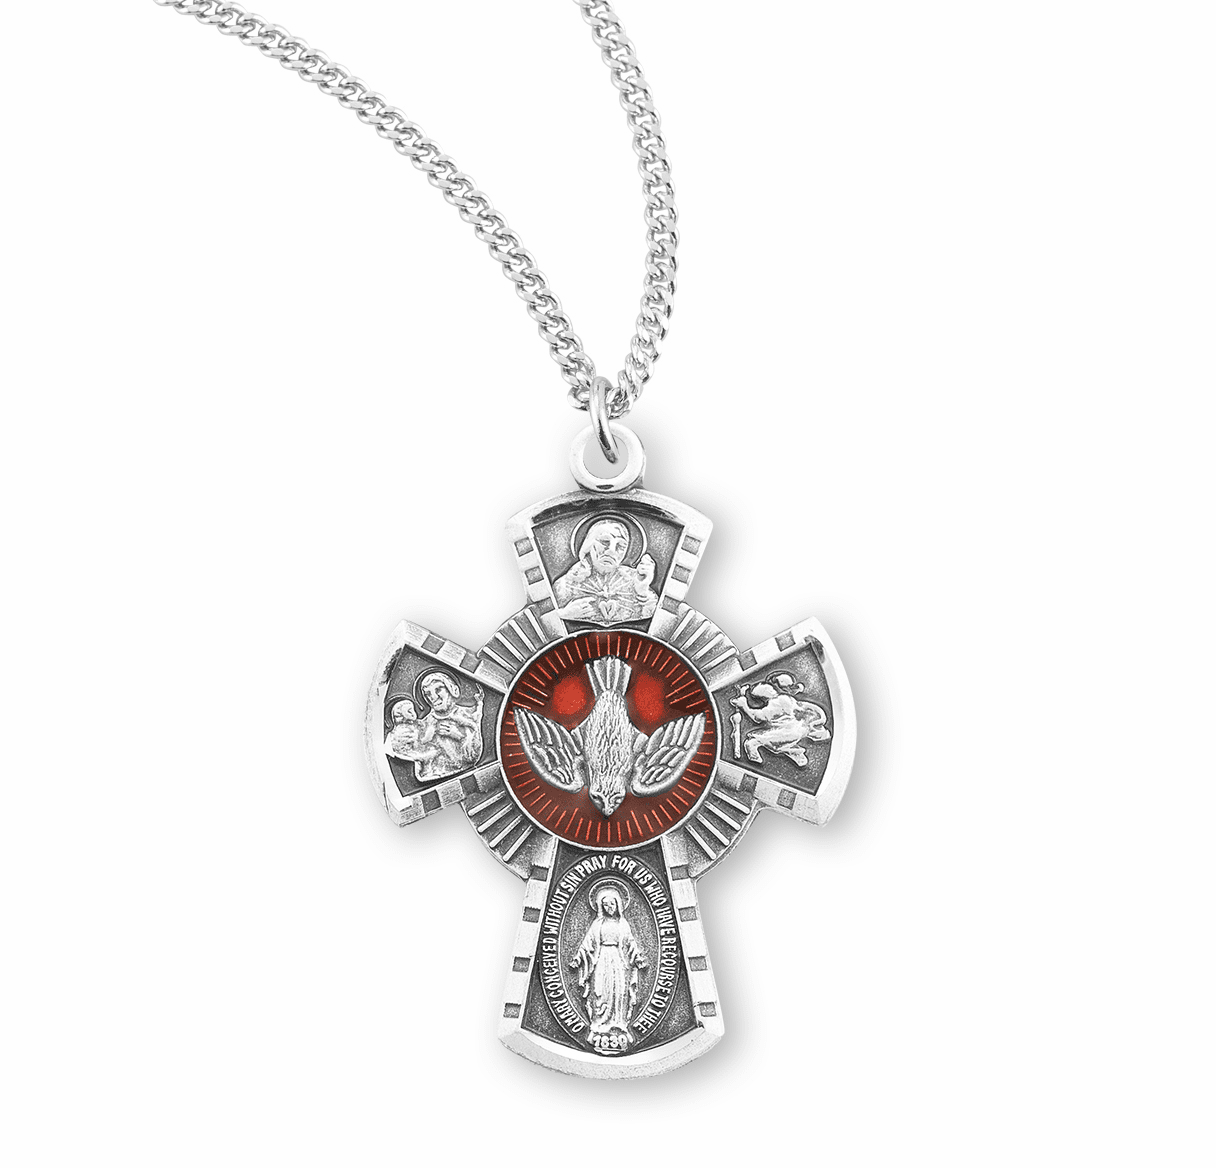 Small Red Sterling Silver Four-Way Medal Necklace by HMH Religious